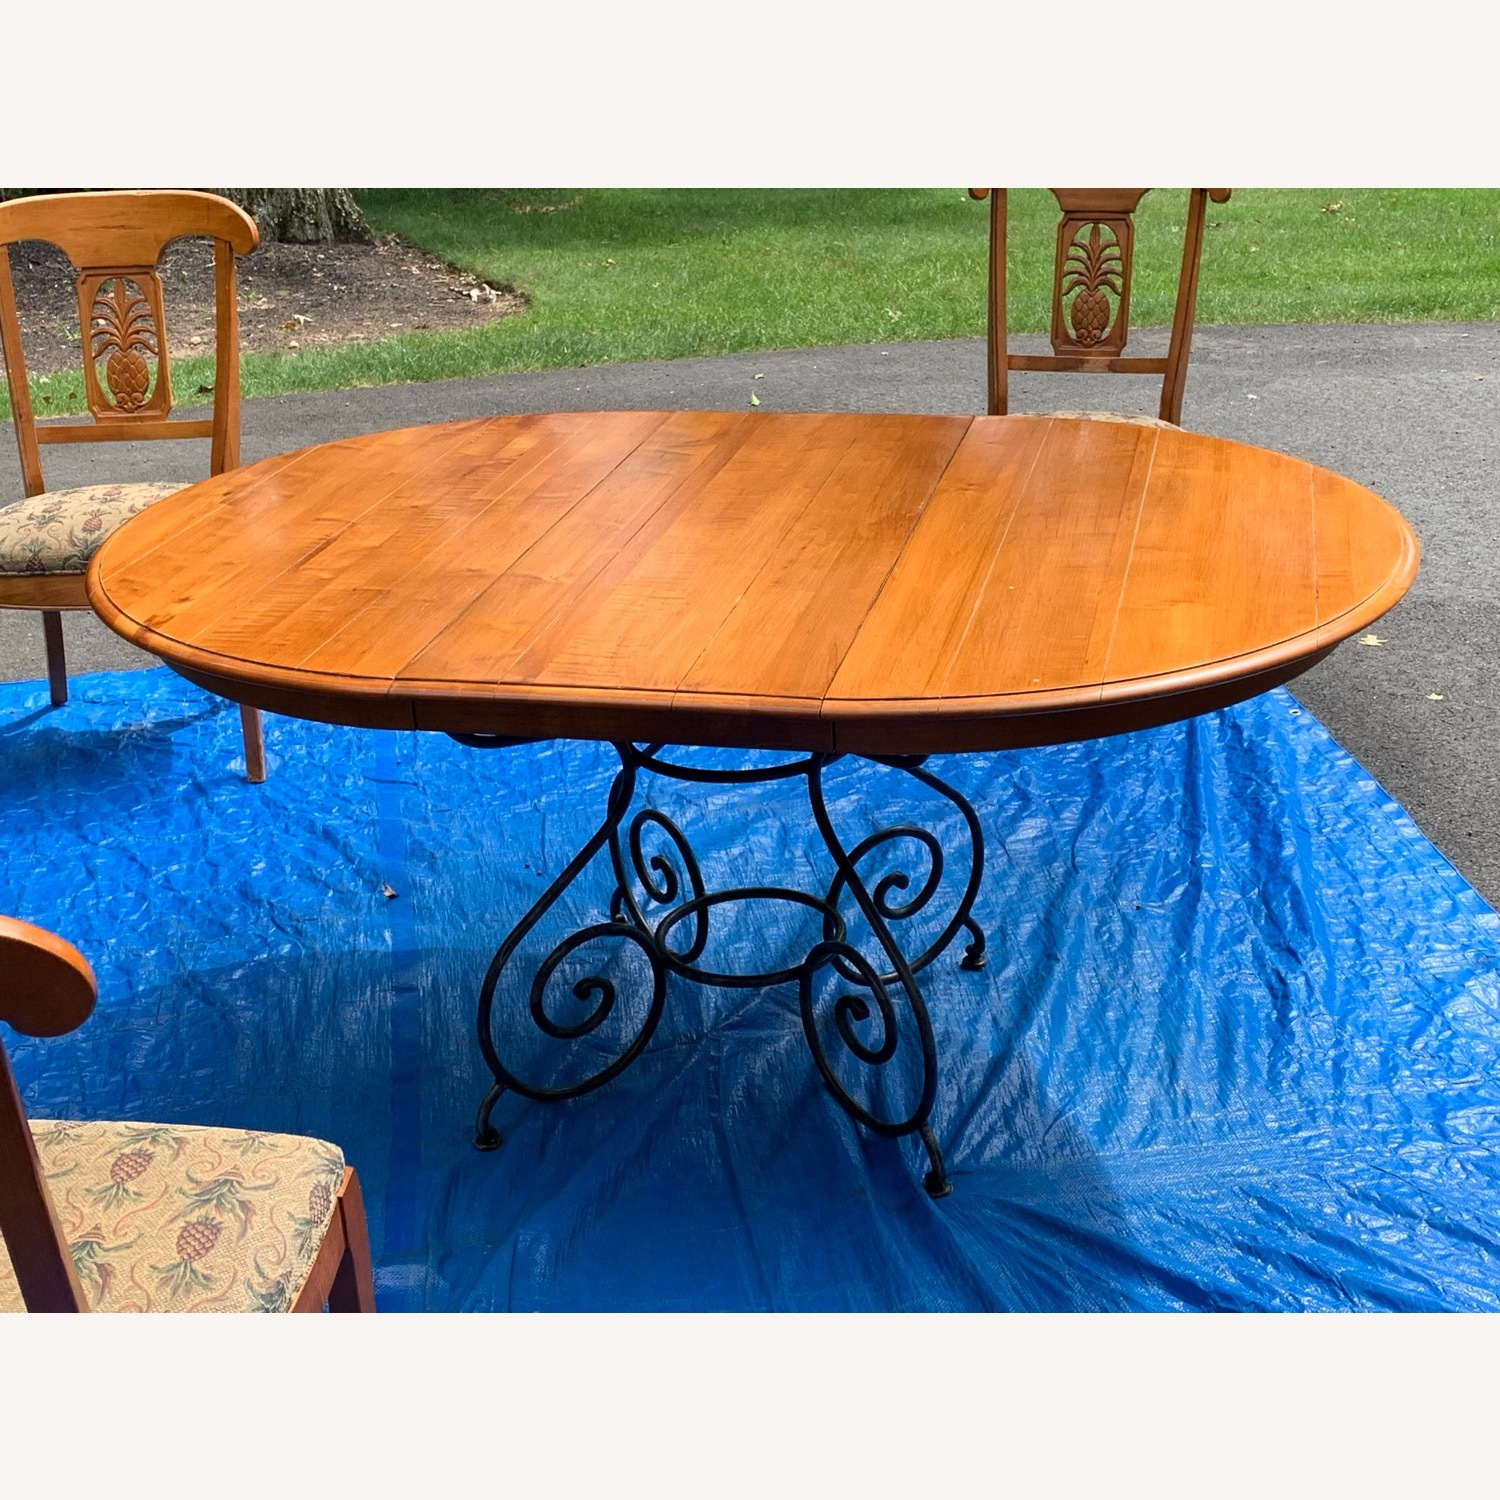 Ethan Allen Wood Dining Table with Leaf & 4 Chairs - image-2